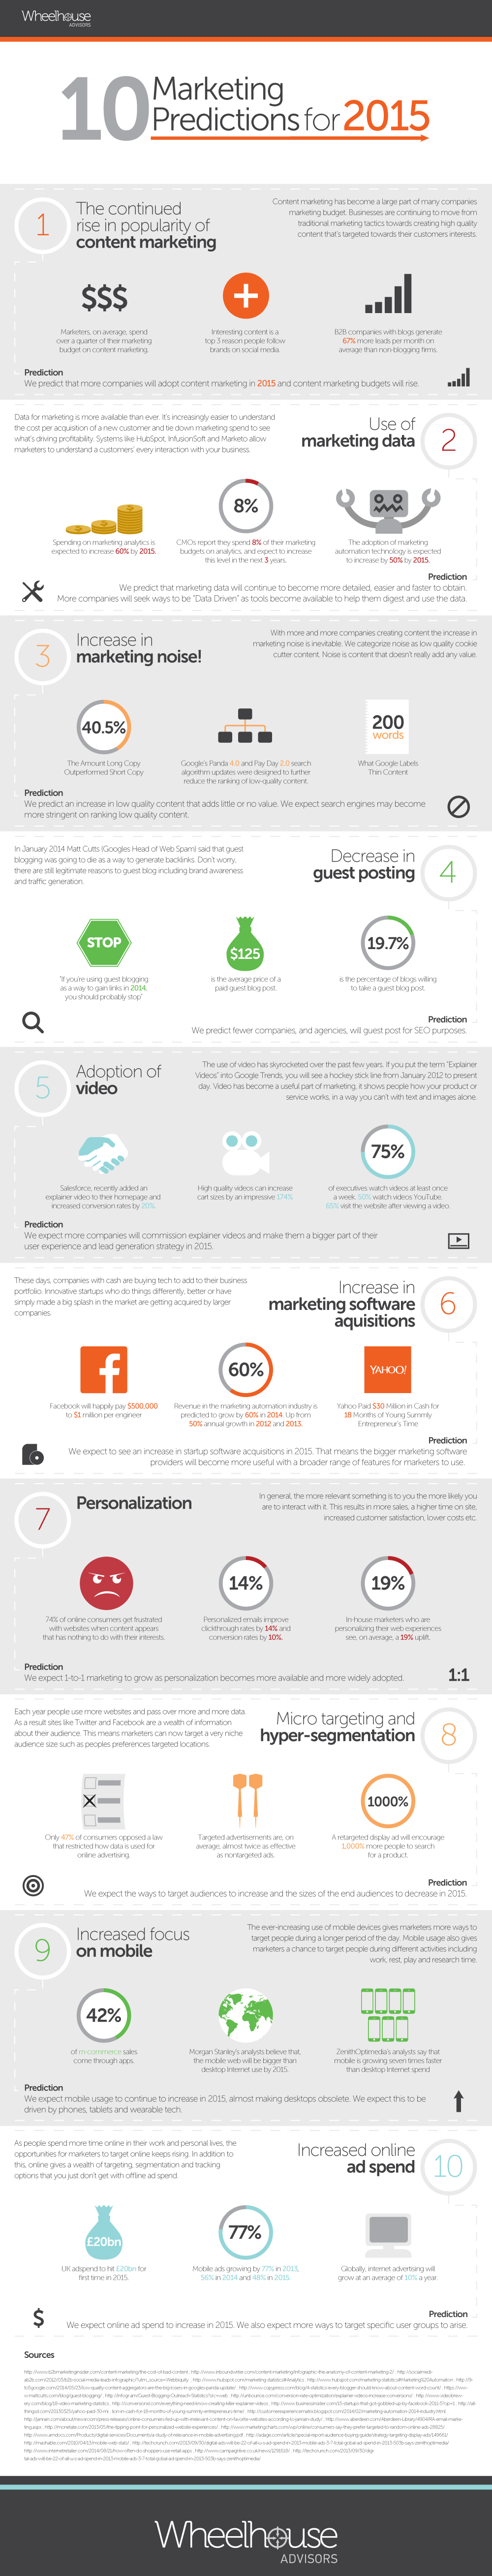 10 marketing predictions infographic